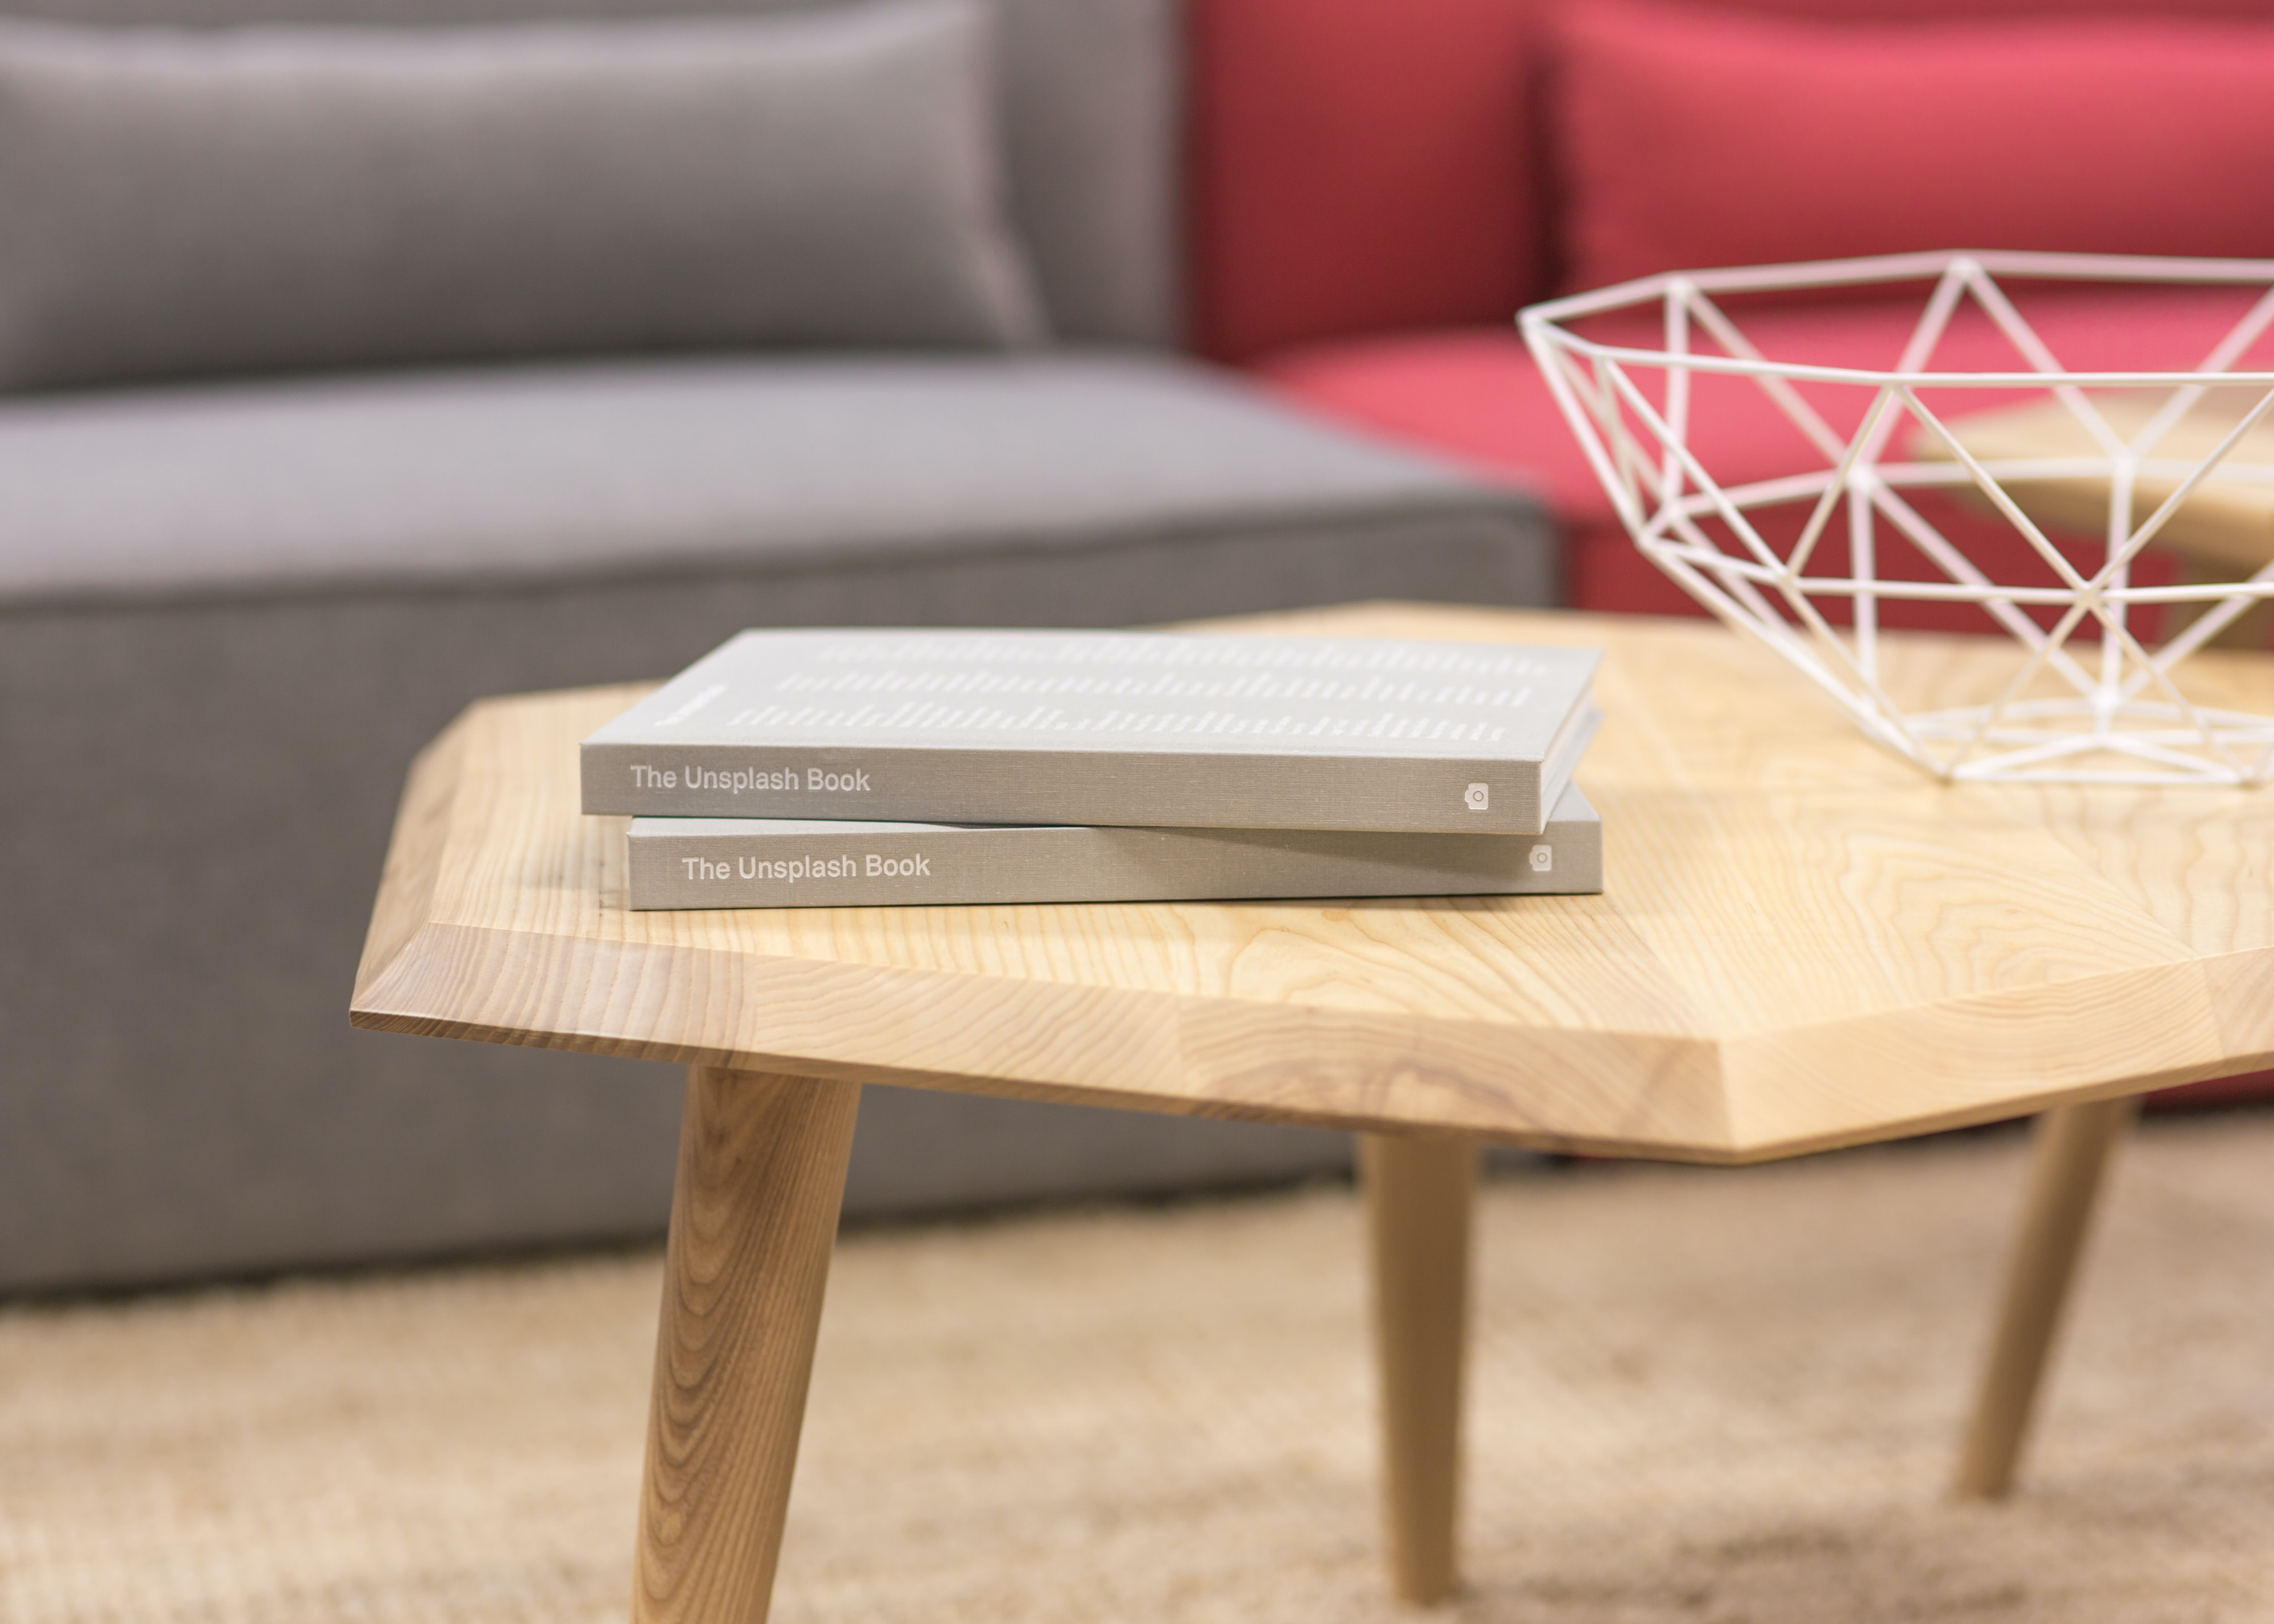 two gray books on brown wooden table